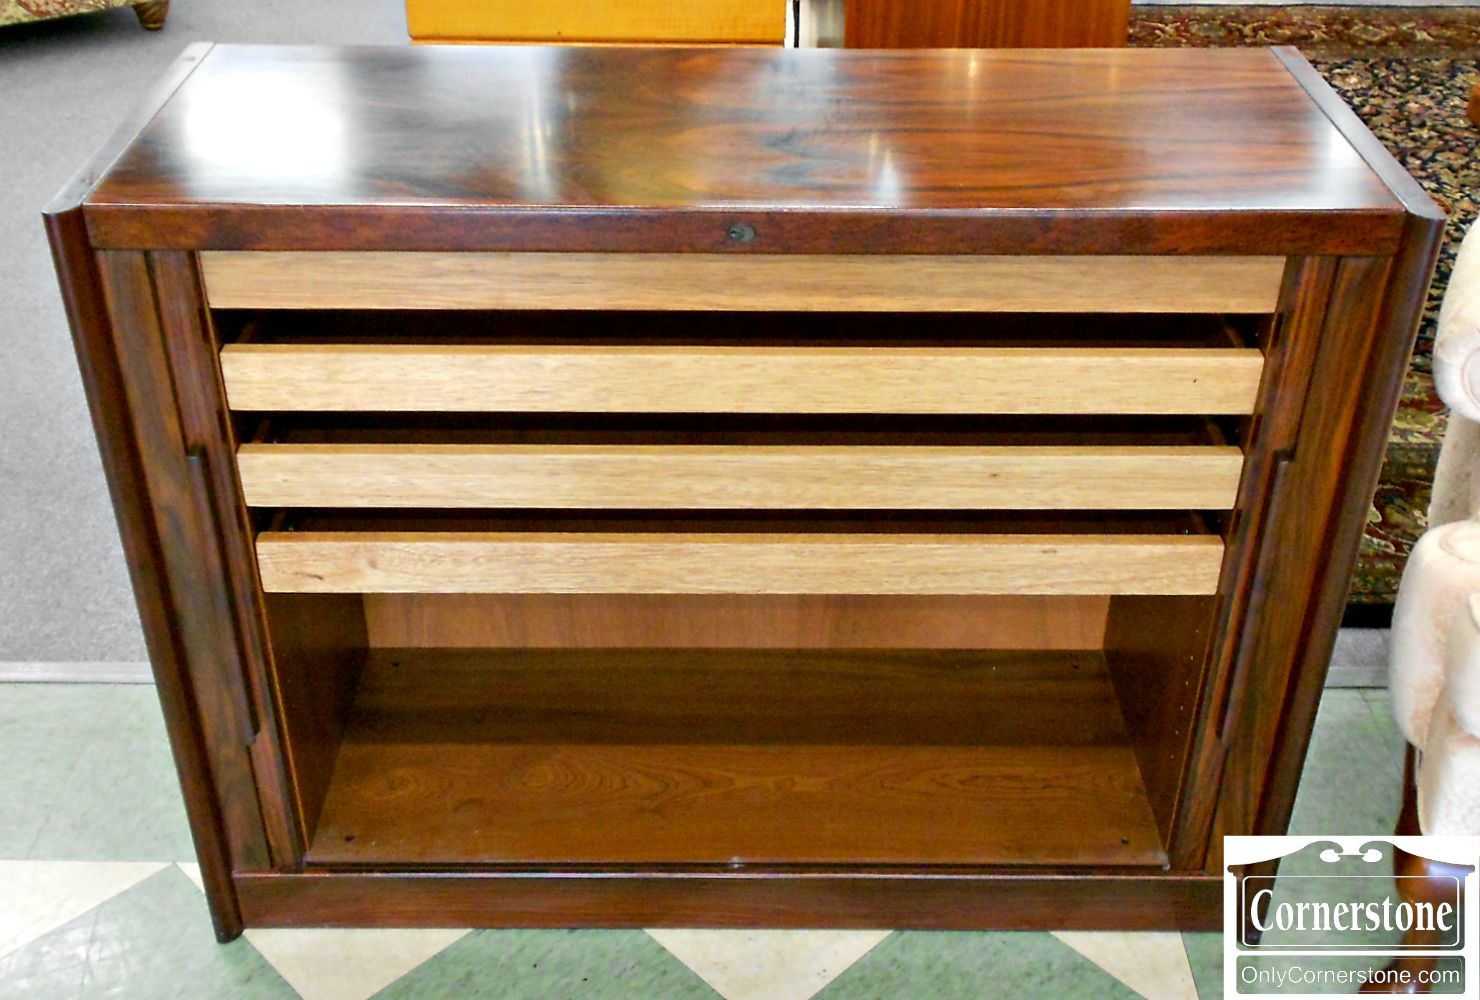 5208-819 Z Dyrlund Rosewood Cabinet with Interior Drawers